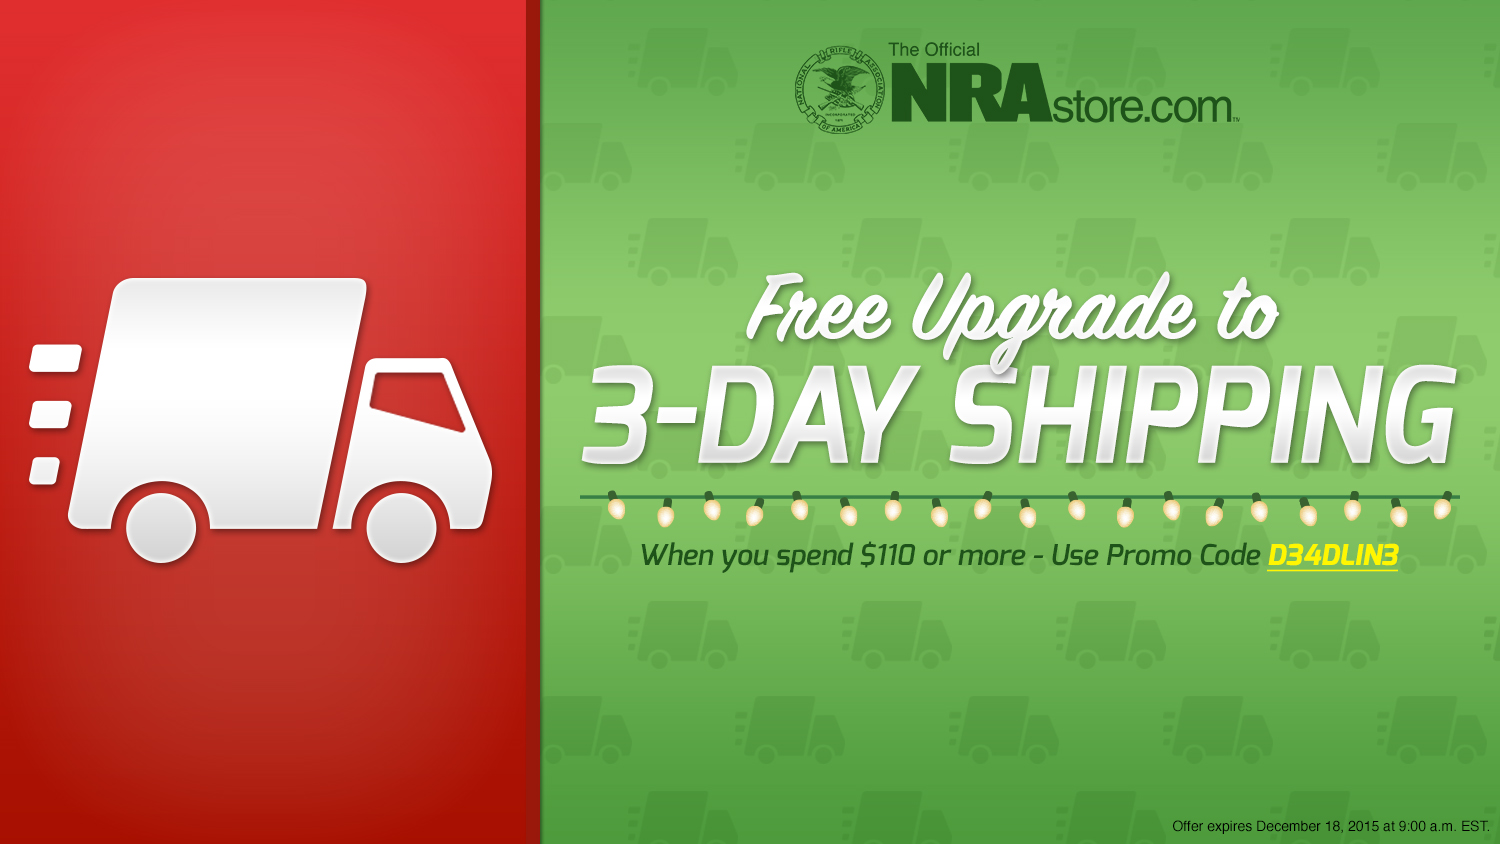 Shop last minute Christmas gifts with FREE upgrade to 3 day shipping at NRAstore.com